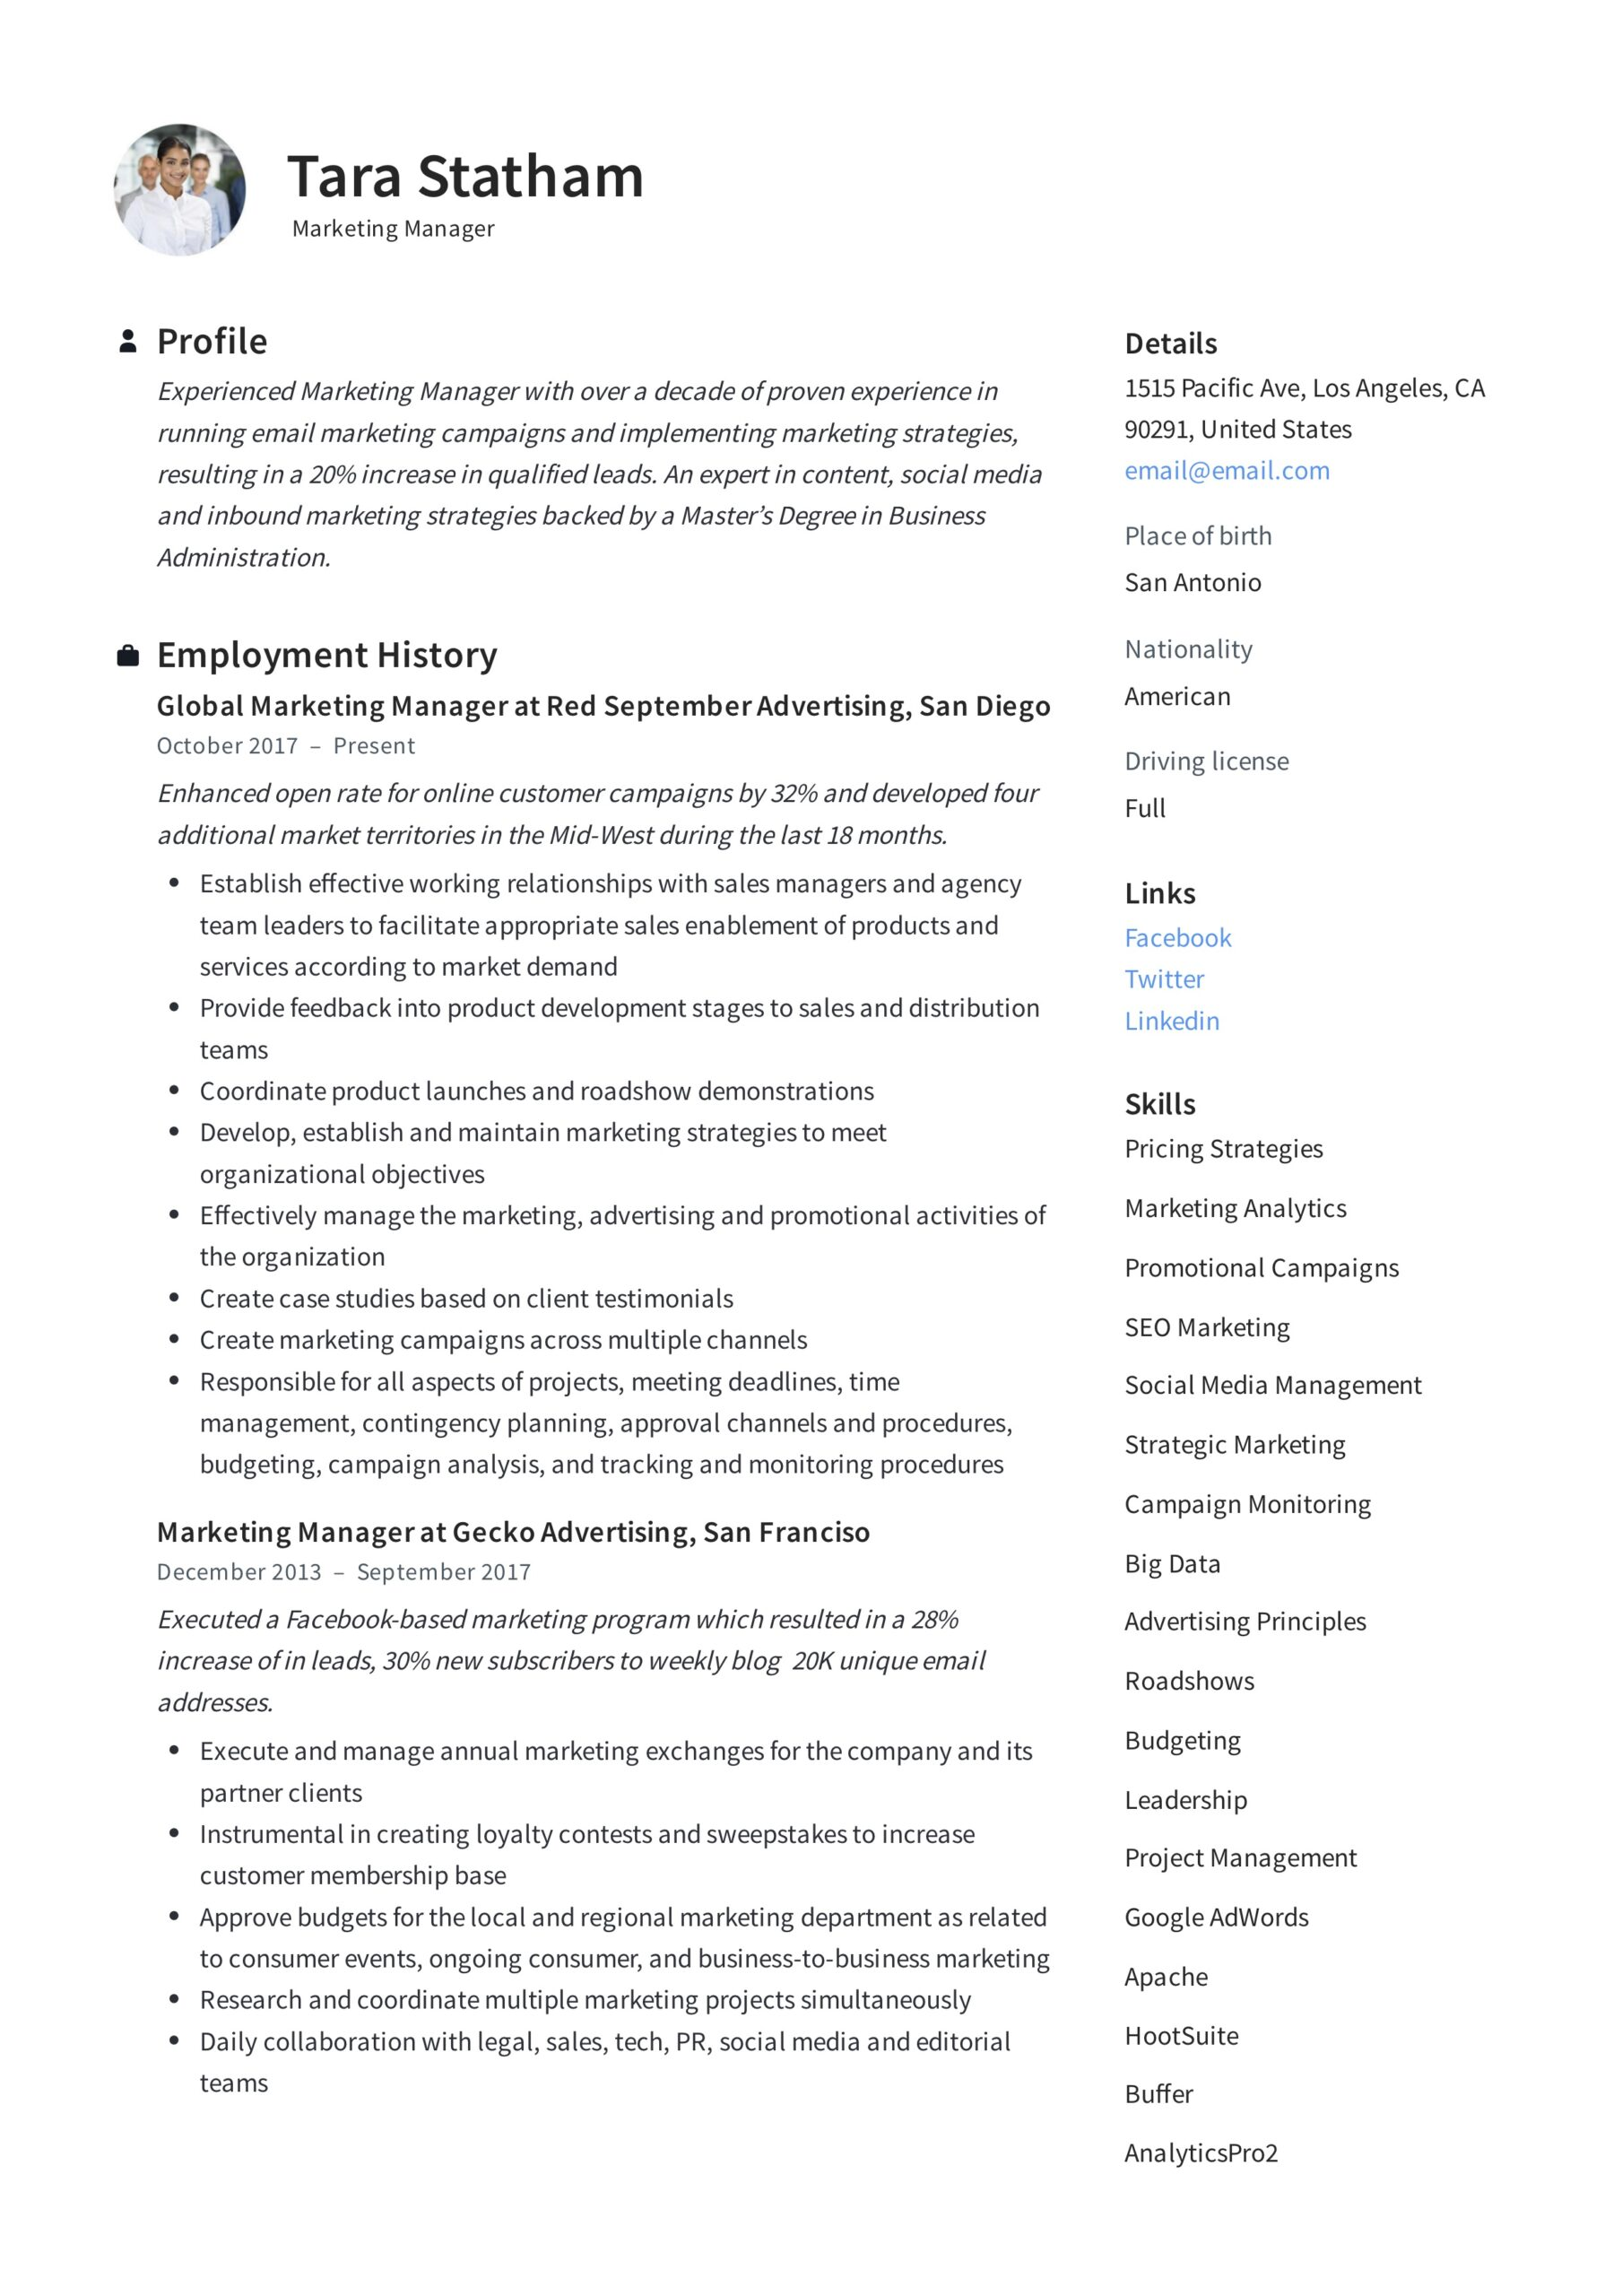 marketing manager resume writing guide templates tara statham moderno consultation Resume Marketing Manager Resume